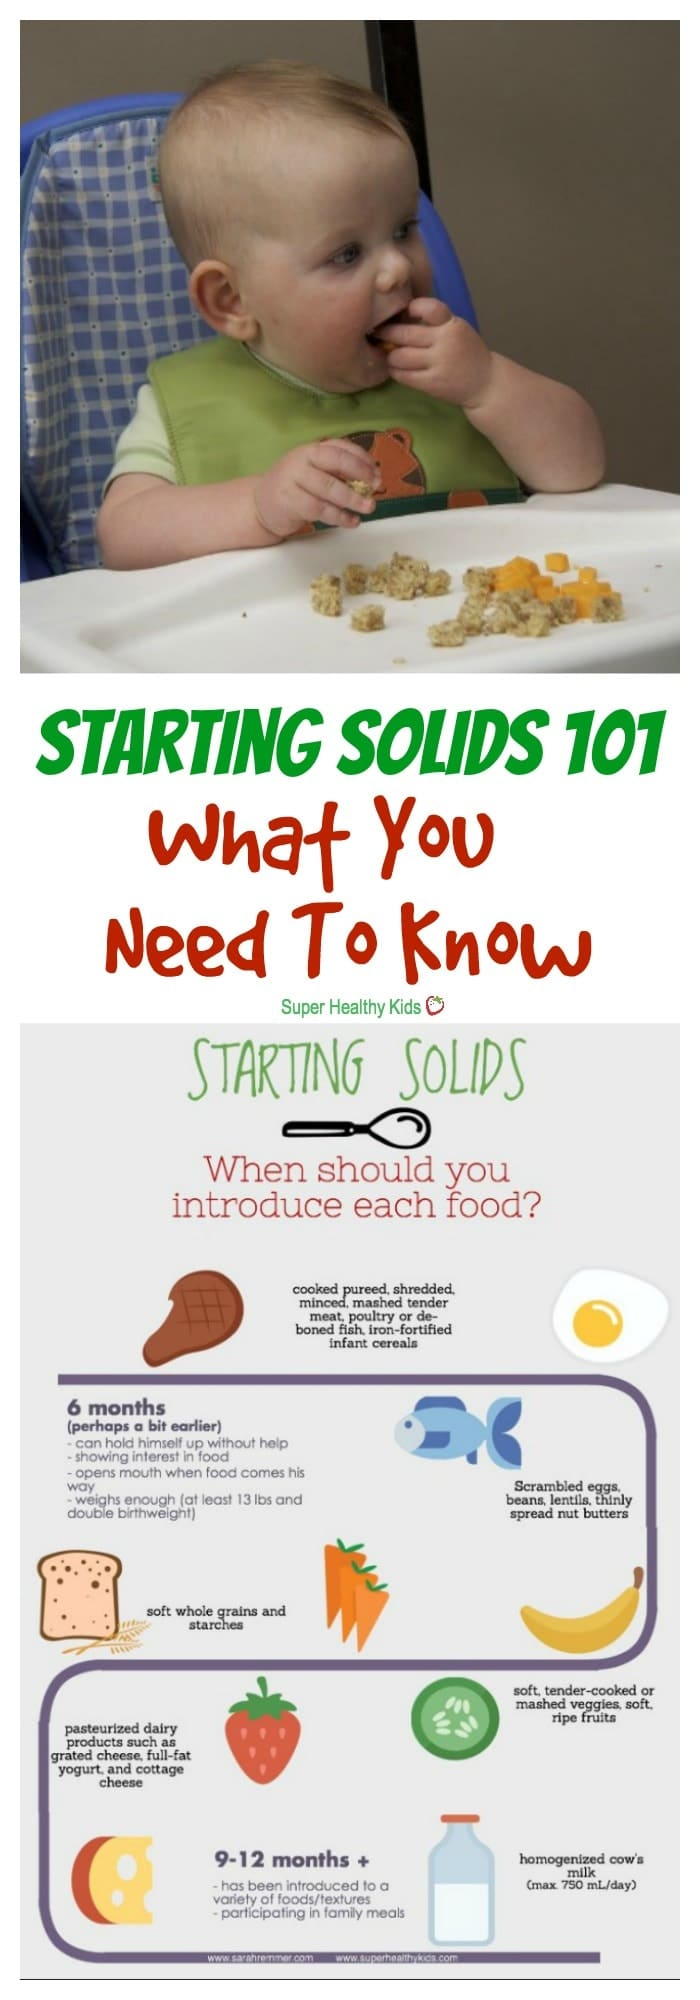 MOM TIPS - Starting Solids 101: What You Need to Know. Starting solids can seem overwhelming at first. Here's what you need to know--straight from a registered dietitian and mom.https://www.superhealthykids.com/starting-solids-101-need-know/